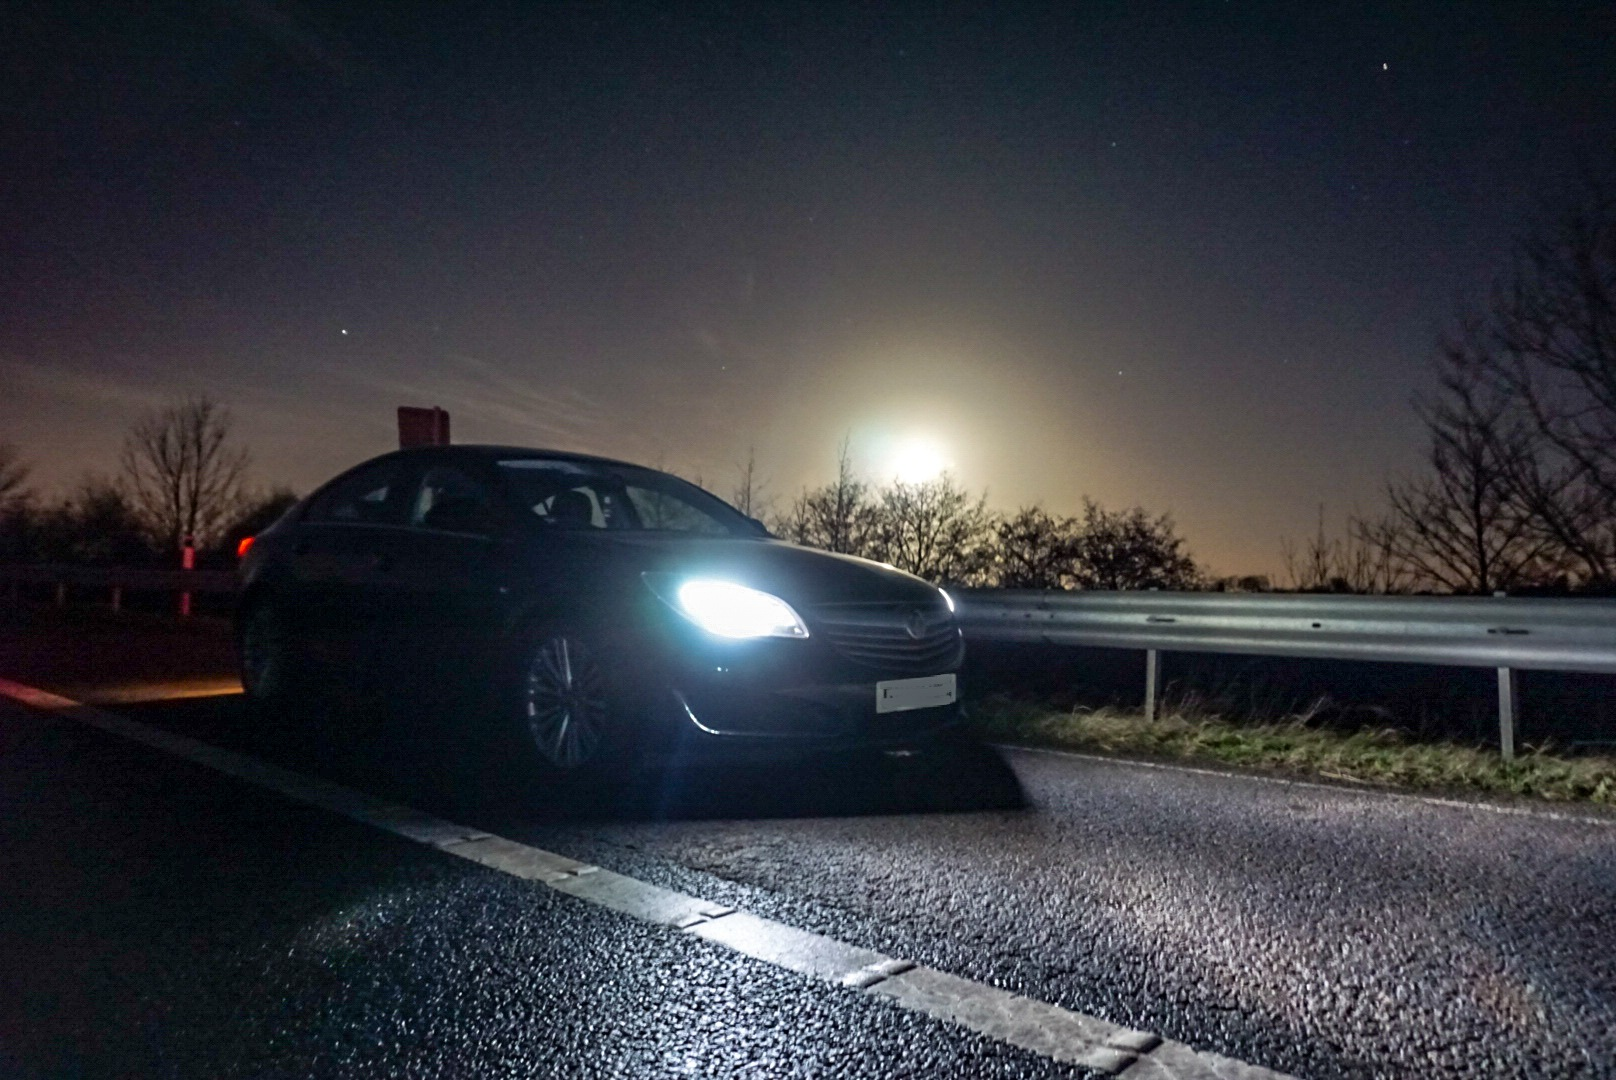 Night Drive by James M